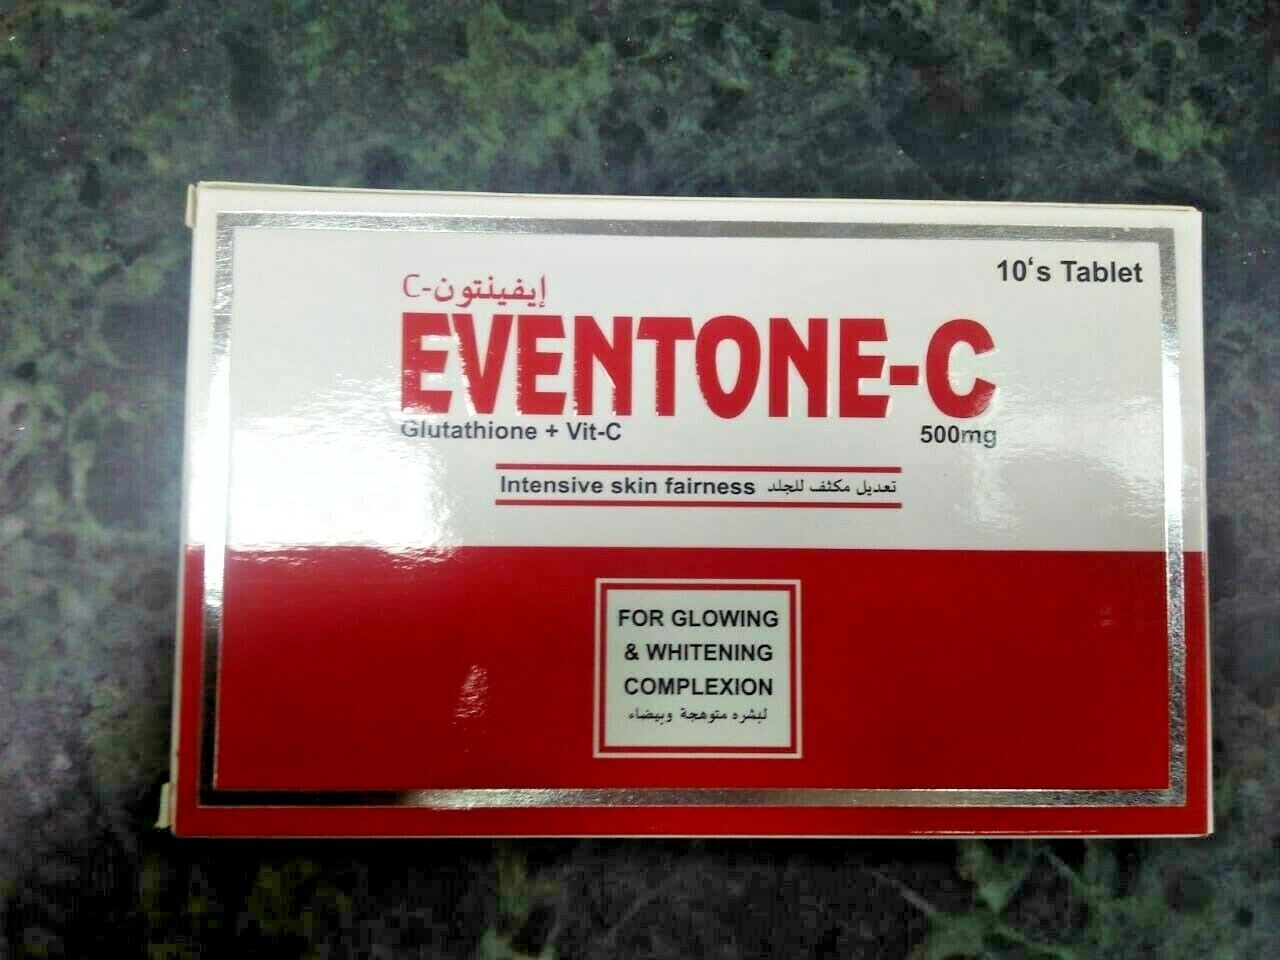 EVENTONE-C TABLETS FOR GLOWING & WHITENING + FREE SHIPPING